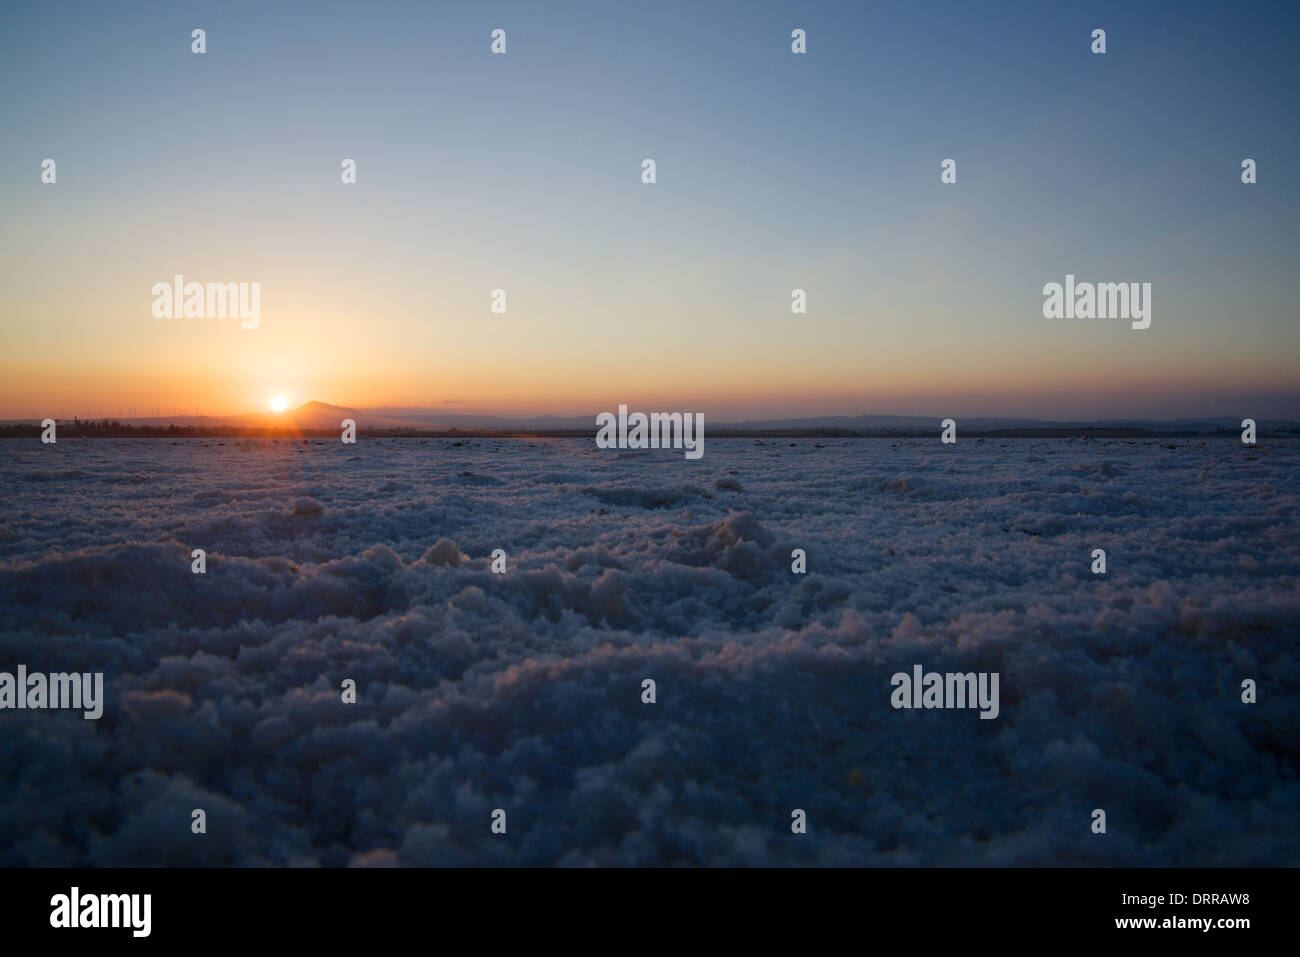 Sunset over the salt lake near Larnaca, Cyprus, Greece - Stock Image